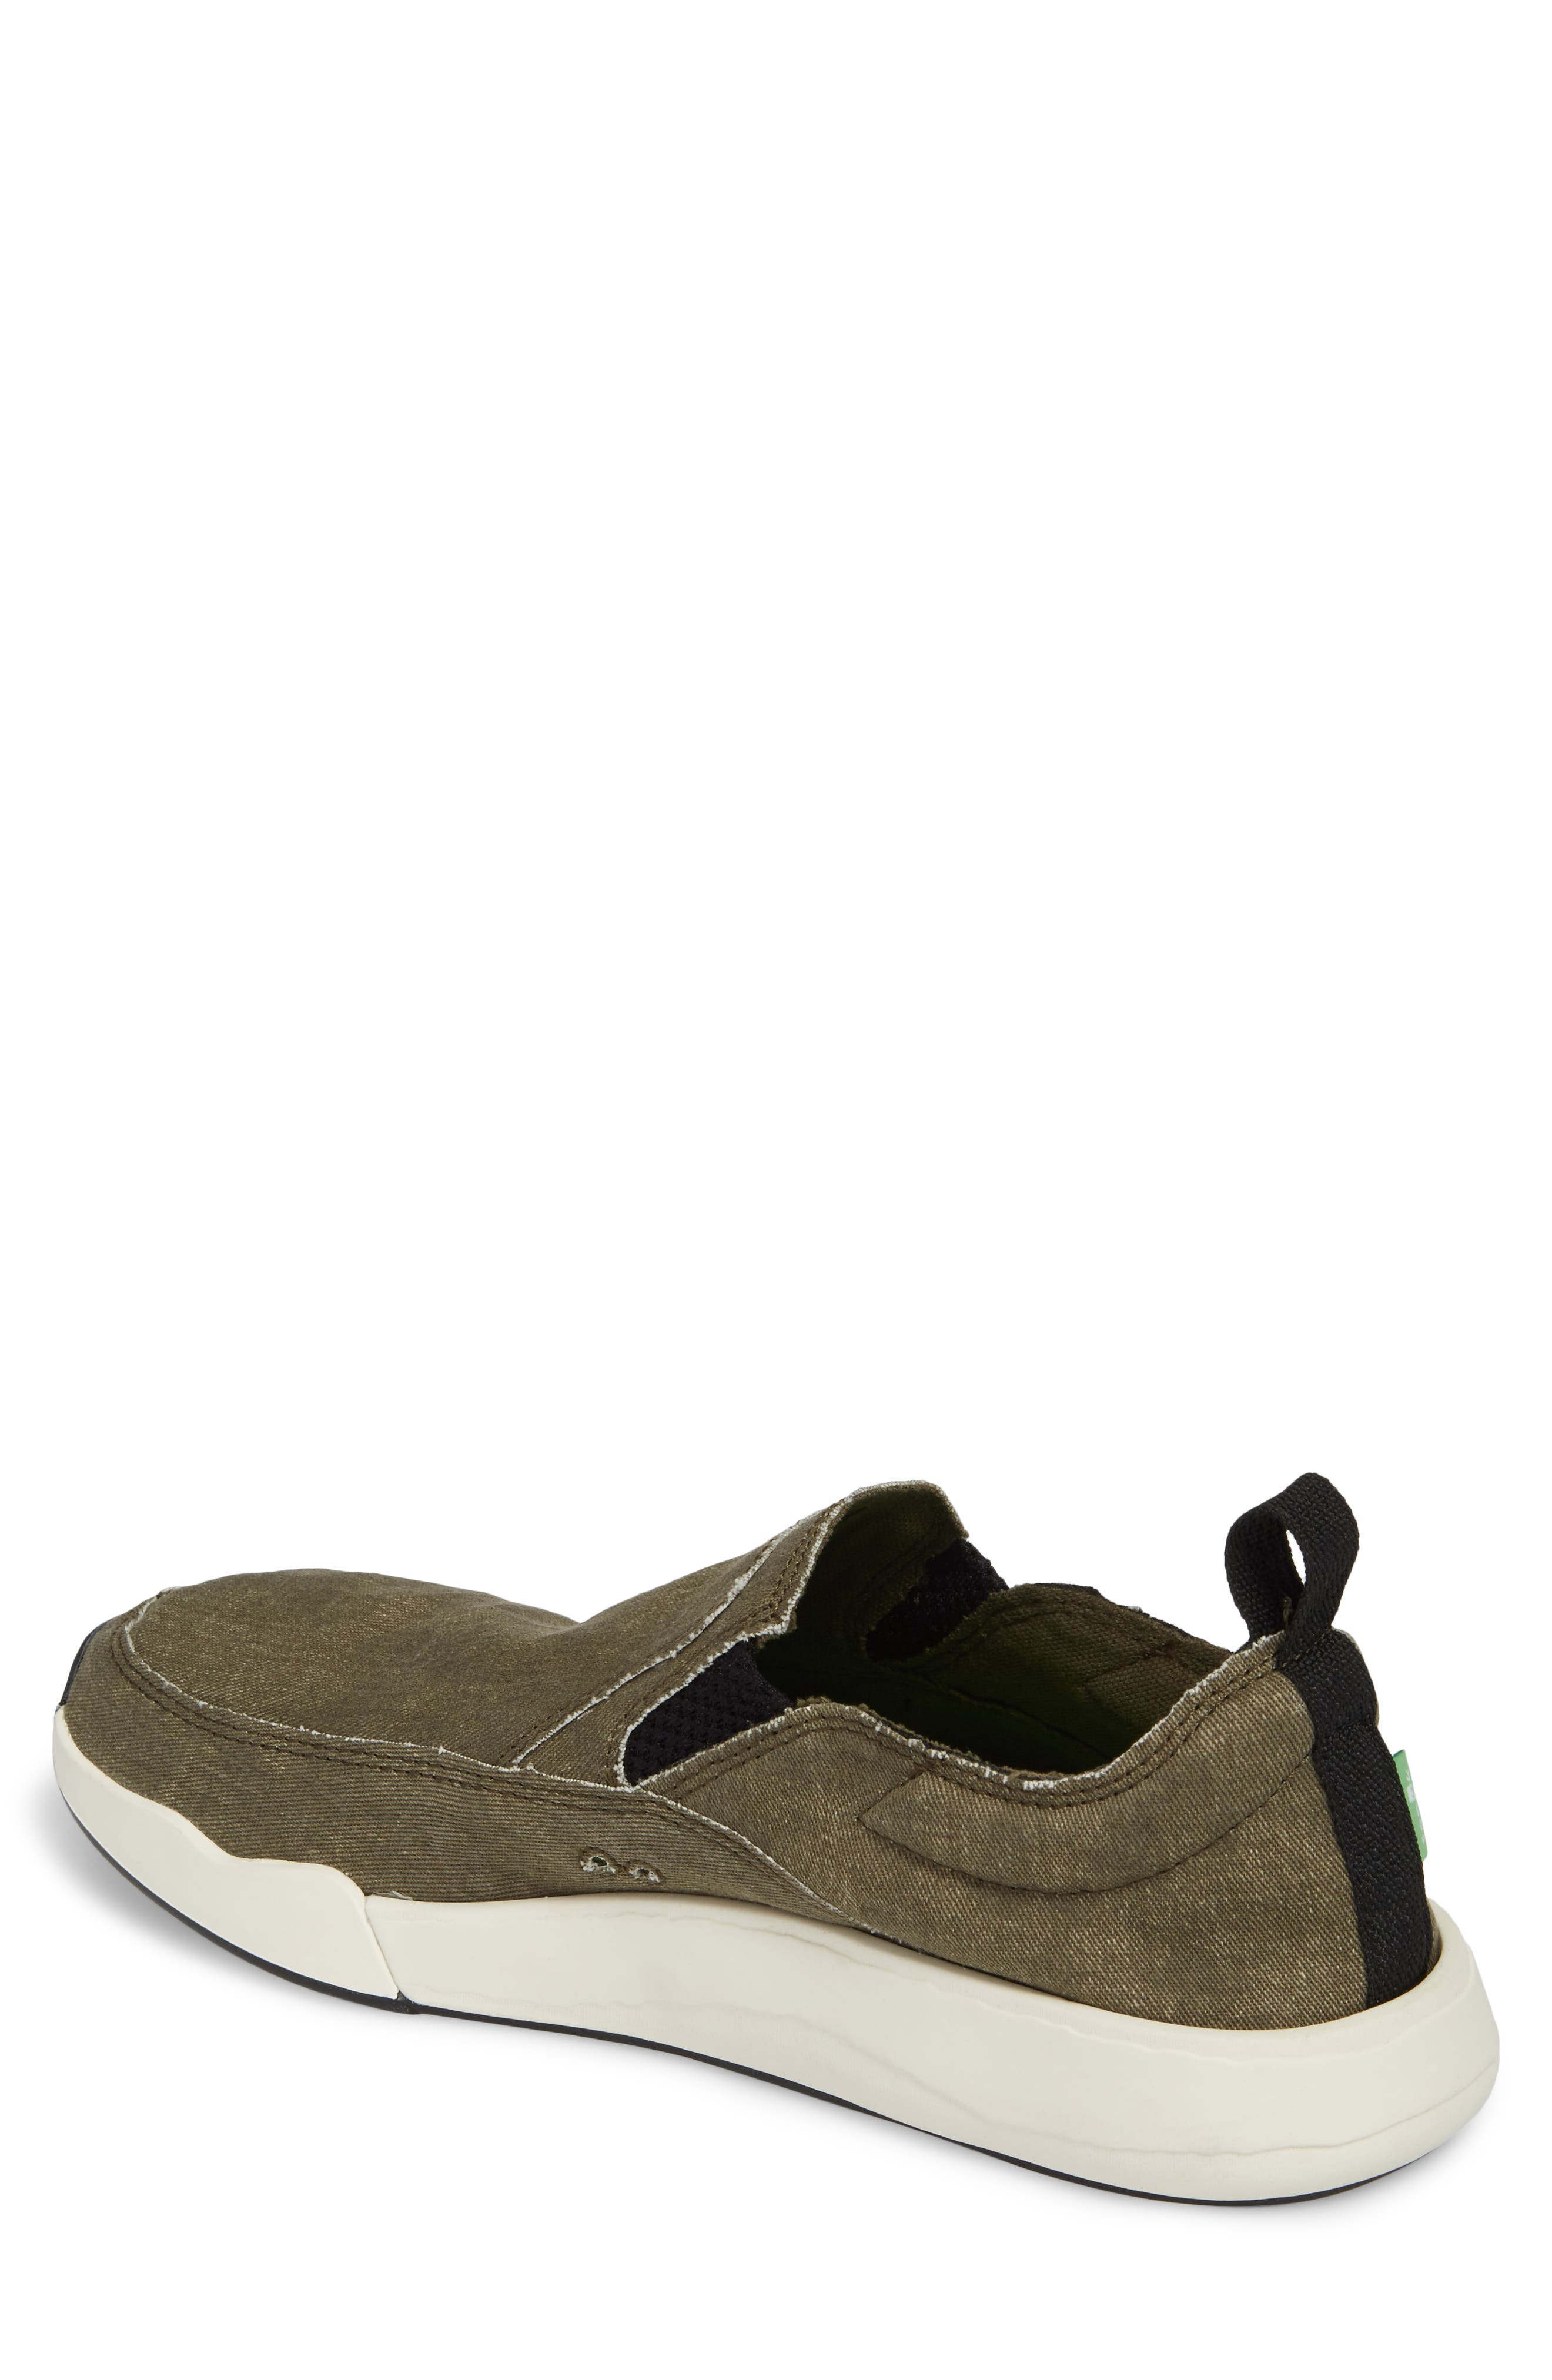 Chiba Quest Slip-On Sneaker,                             Alternate thumbnail 2, color,                             Olive